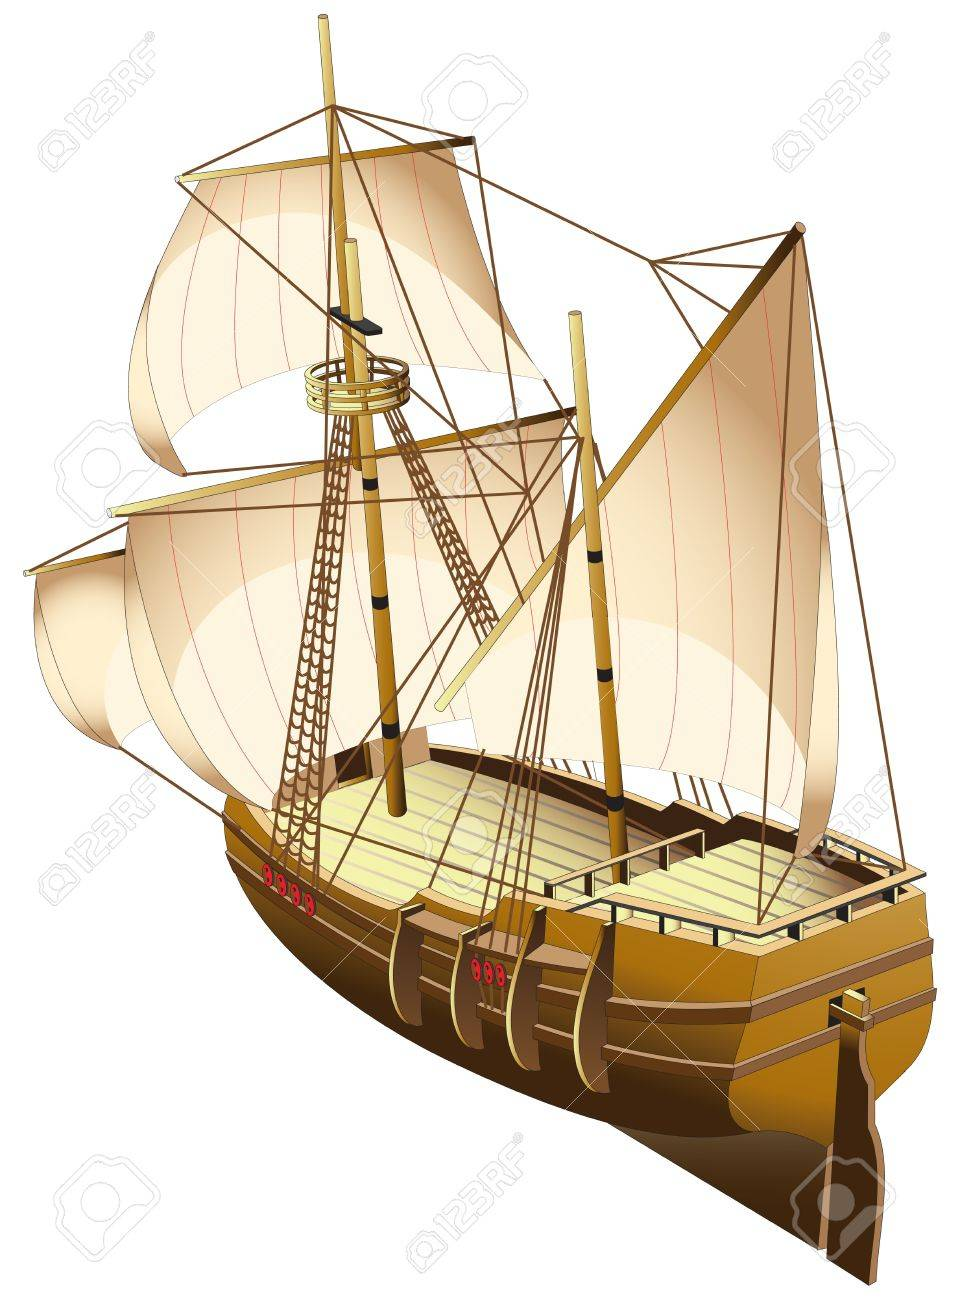 vectorial image of old tallship (carvel - fast Spanish or Portuguese ship of the 15th-17th centuries), isolated on white background. File contains gradients. Stock Vector - 11138972